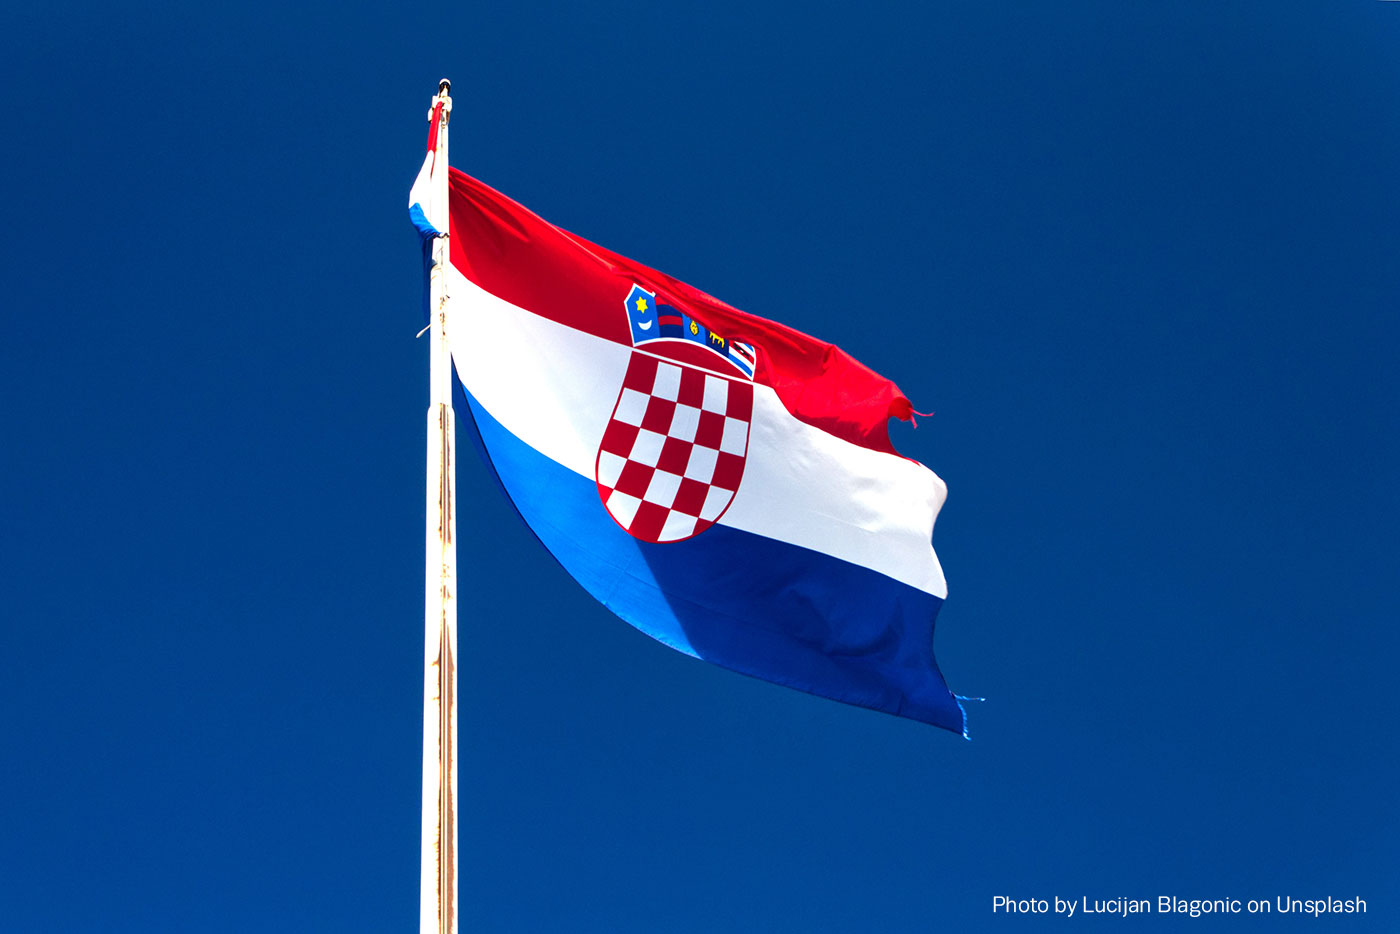 Croatian flag on blue sky background